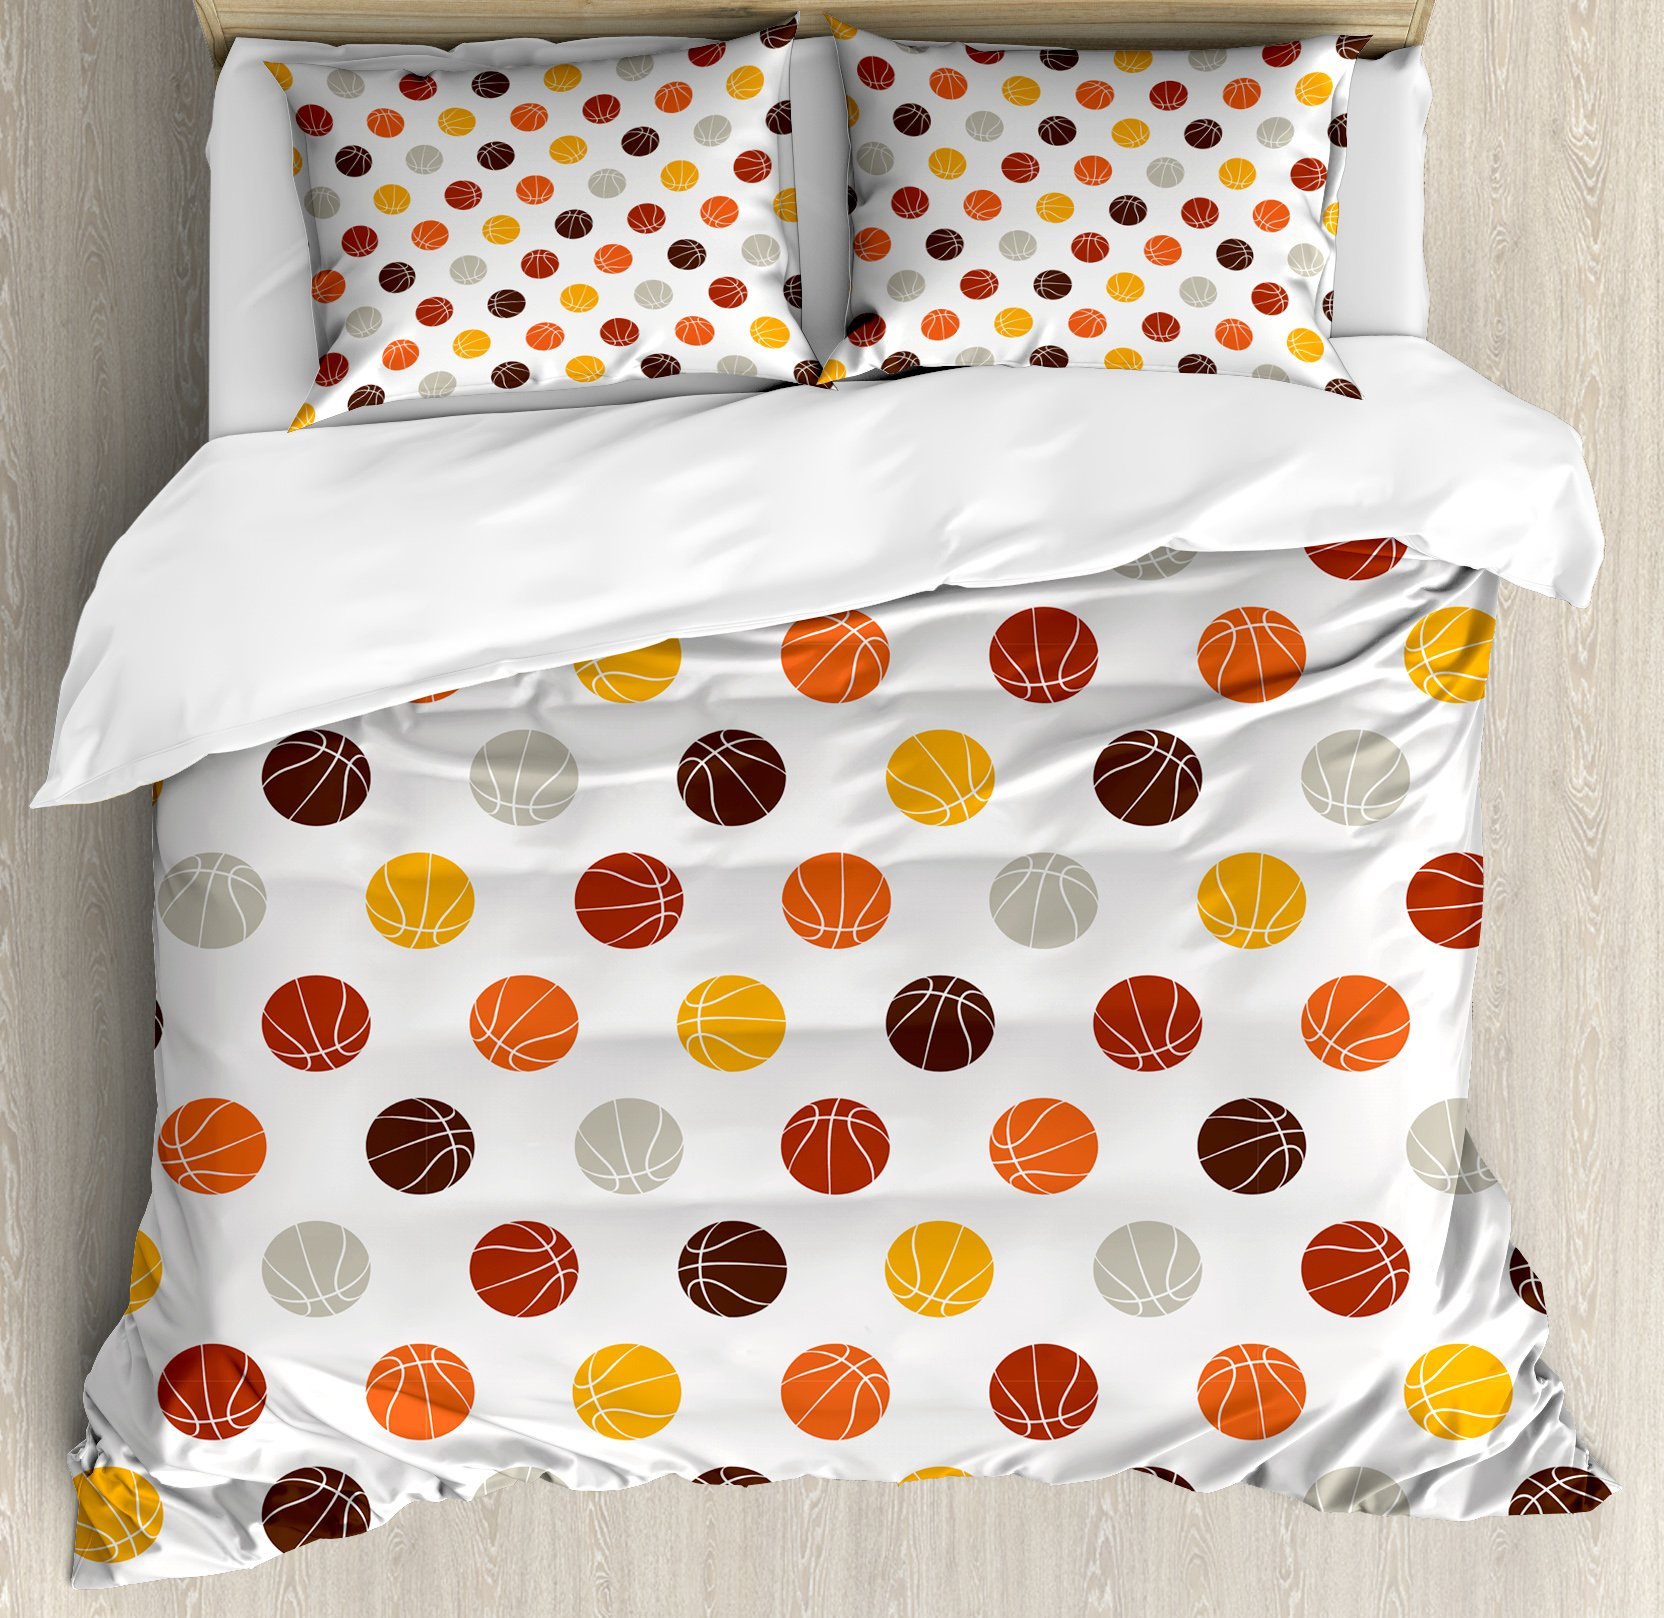 Basketball Duvet Cover Set Queen Size by Ambesonne, Ball Pattern in Earthen Tones Competition Sports Professional League Game Player, Decorative 3 Piece Bedding Set with 2 Pillow Shams, Multicolor